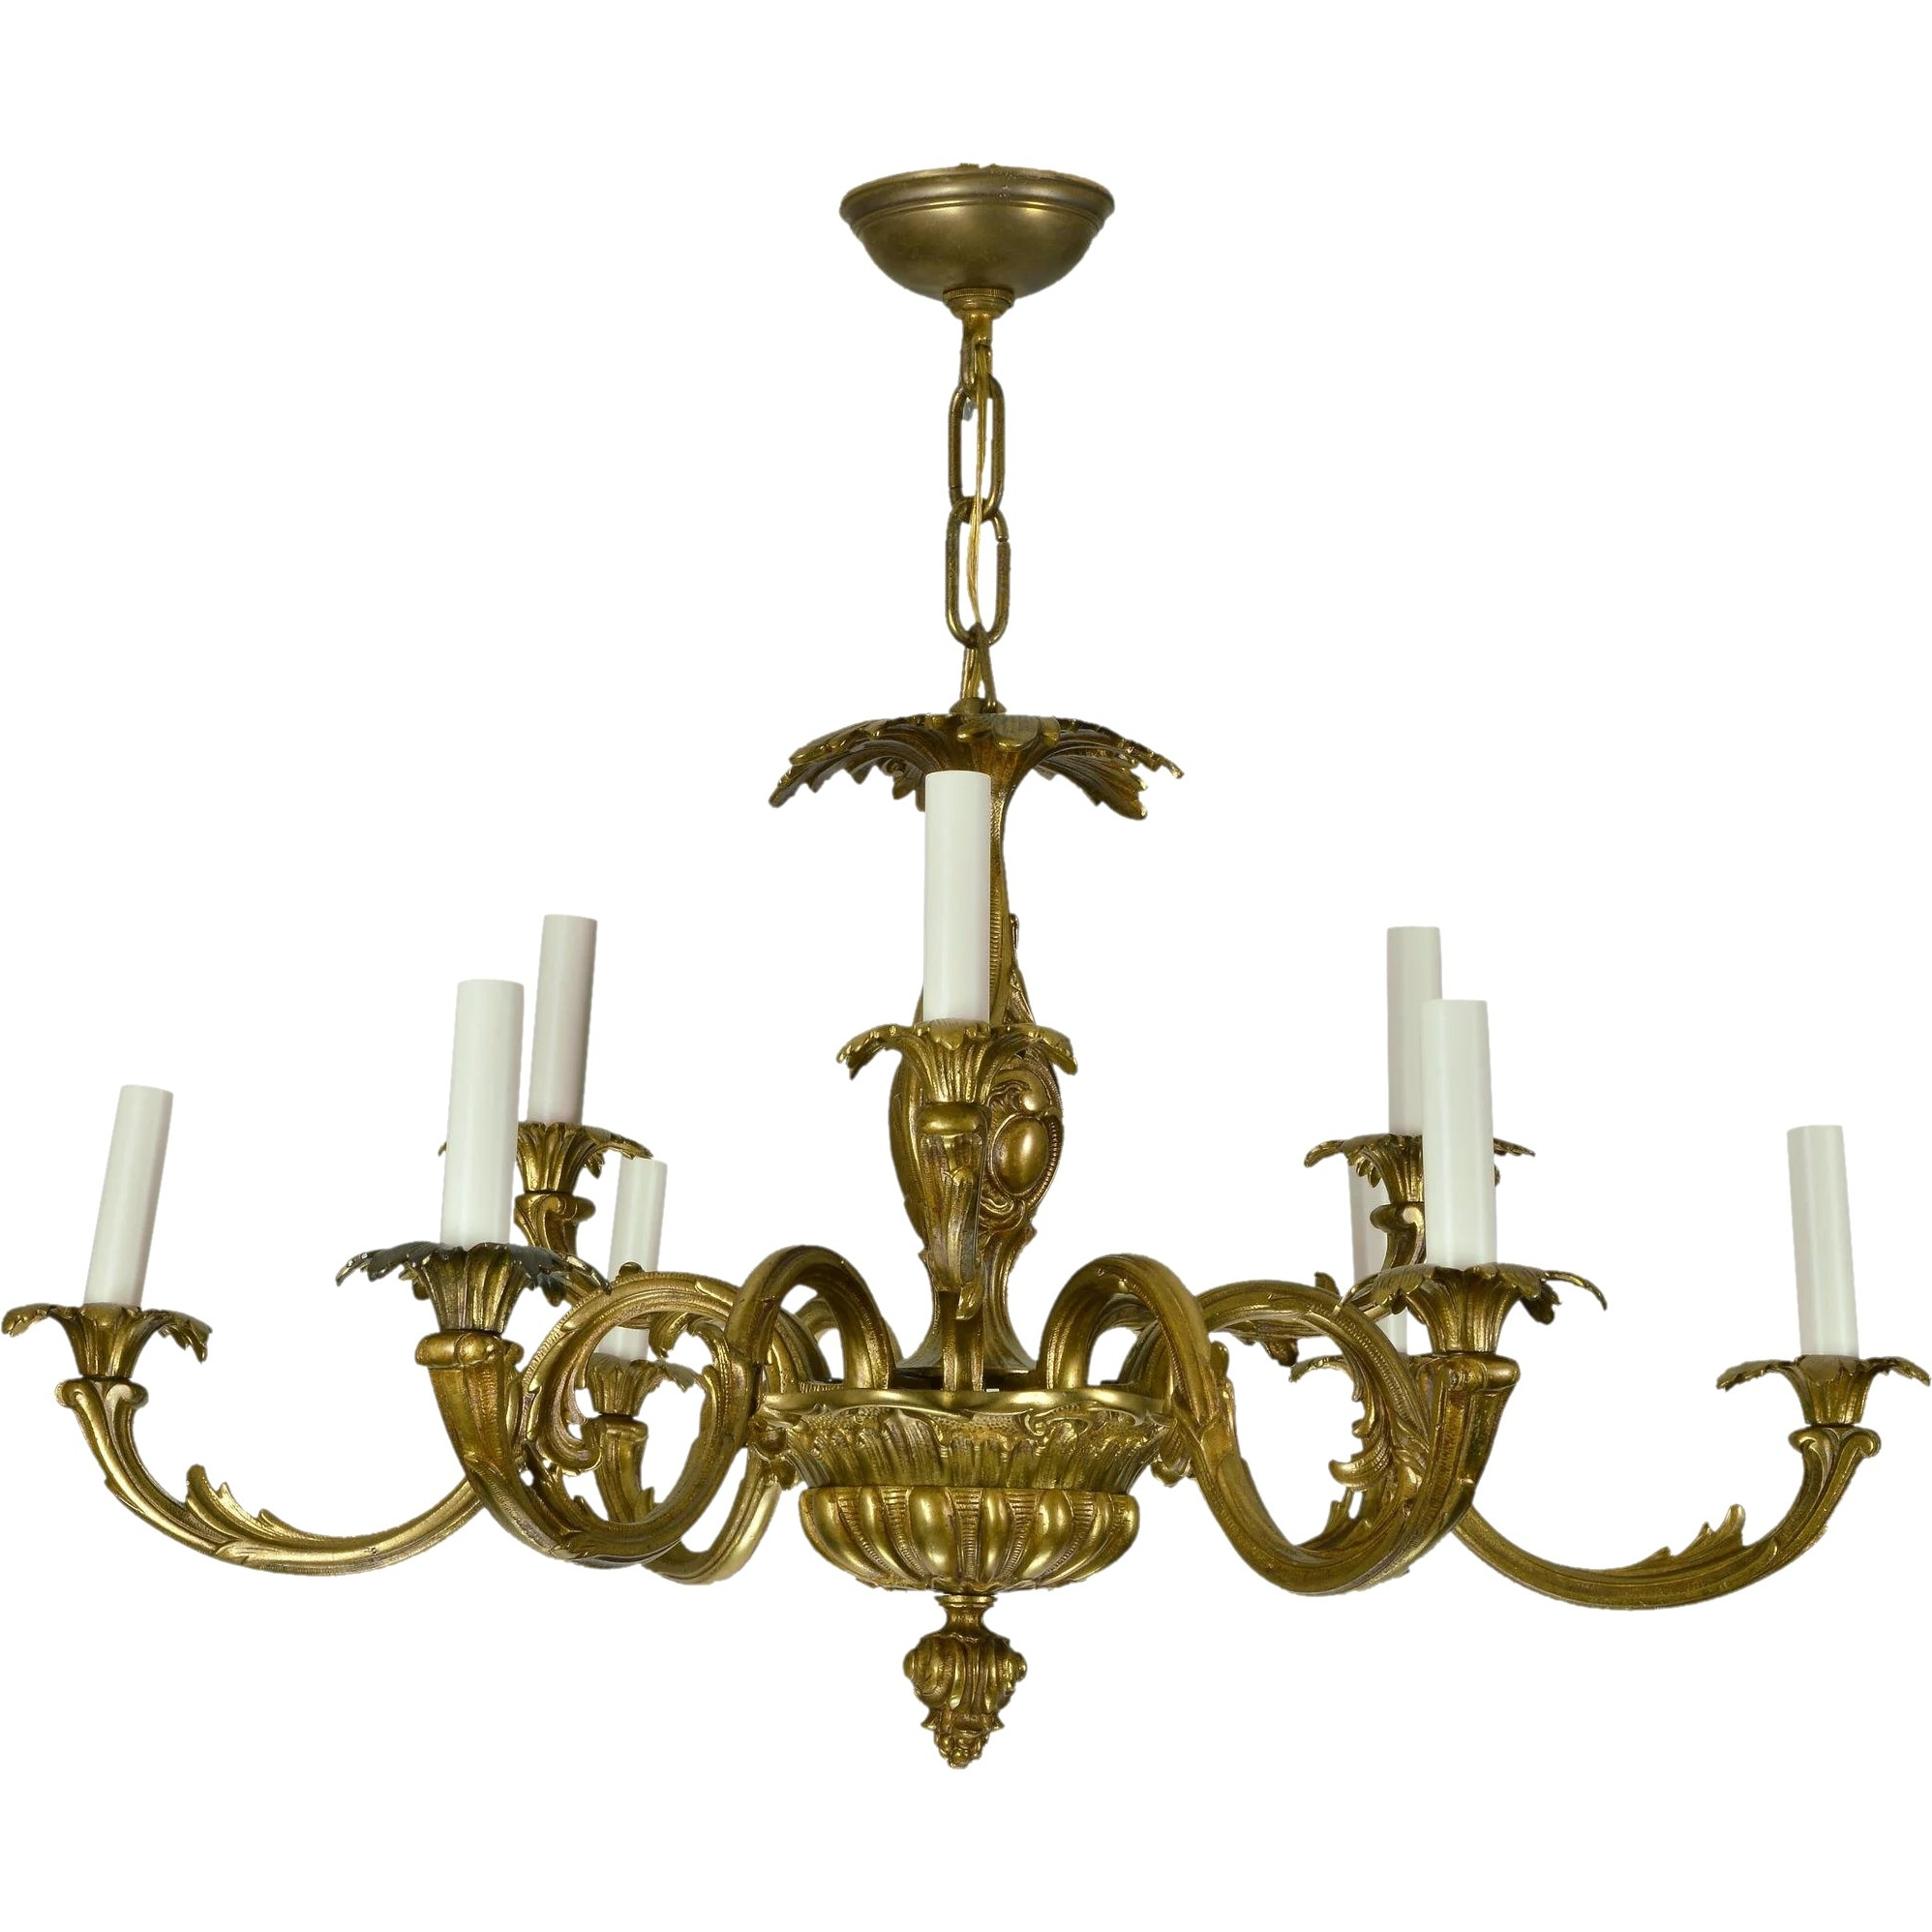 Baroque Chandelier With Regard To 2018 Vintage Brass French Baroque Chandelier : The Old Light Warehouse (View 2 of 15)